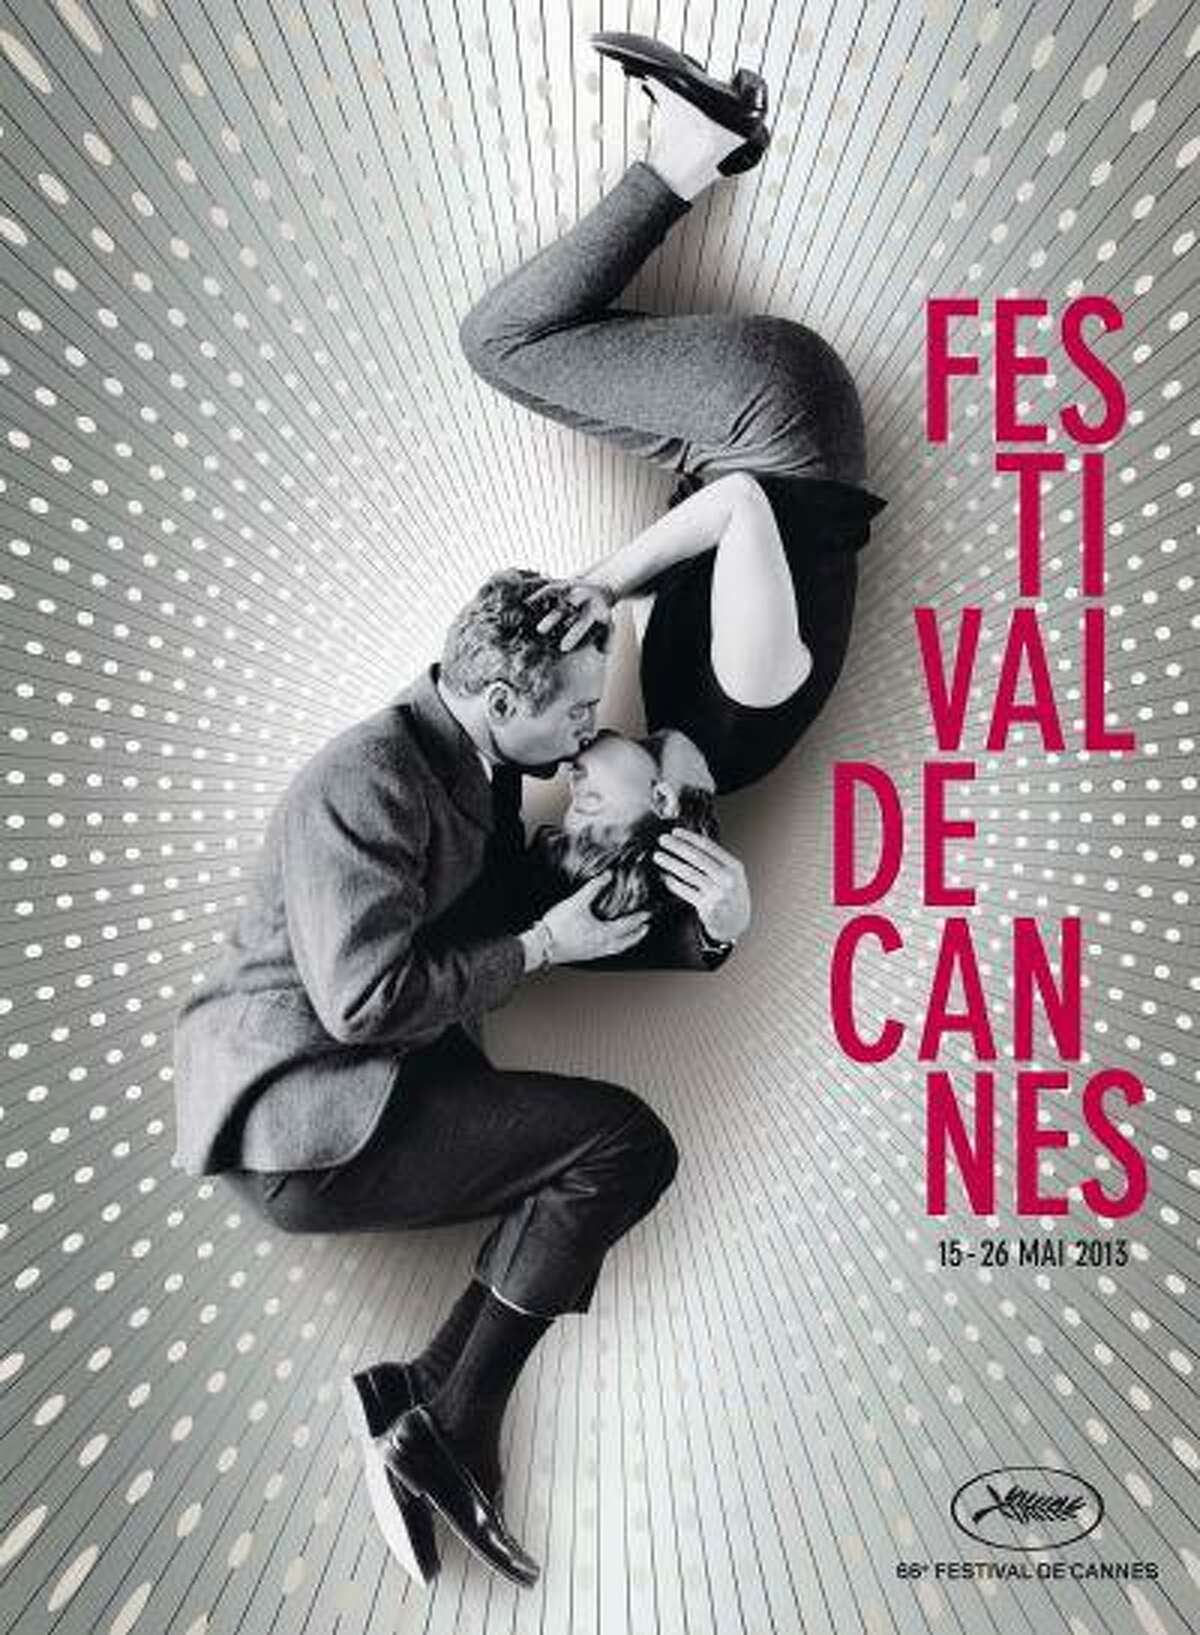 """The official poster of the 66th Cannes Film Festival, taken from a picture of Joanne Woodward and Paul Newman during the shooting of """"A New Kind of Love"""", by director Melville Shavelson in 1963, is seen in this handout image released to Reuters on April 18, 2013. Organizers announced the competing films at a news conference in Paris April 18, 2013. Hollywood stars will mingle with filmmakers from all over the world at next month's Cannes Film Festival after organisers on Thursday unveiled a line-up heavy with international films. The films to be shown at the world's most important cinema showcase were announced in a cinema on the Champs-Elysees underneath a huge video screen of this year's Cannes poster - Paul Newman and Joanne Woodward curled up kissing. REUTERS/Festival de Cannes/l'Agence Bronx/Handout (FRANCE - Tags: SOCIETY ENTERTAINMENT) ATTENTION EDITORS - THIS IMAGE WAS PROVIDED BY A THIRD PARTY. THIS PICTURE IS DISTRIBUTED EXACTLY AS RECEIVED BY REUTERS, AS A SERVICE TO CLIENTS. NO COMMERCIAL OR BOOK SALES. FOR EDITORIAL USE ONLY. NOT FOR SALE FOR MARKETING OR ADVERTISING CAMPAIGNS"""